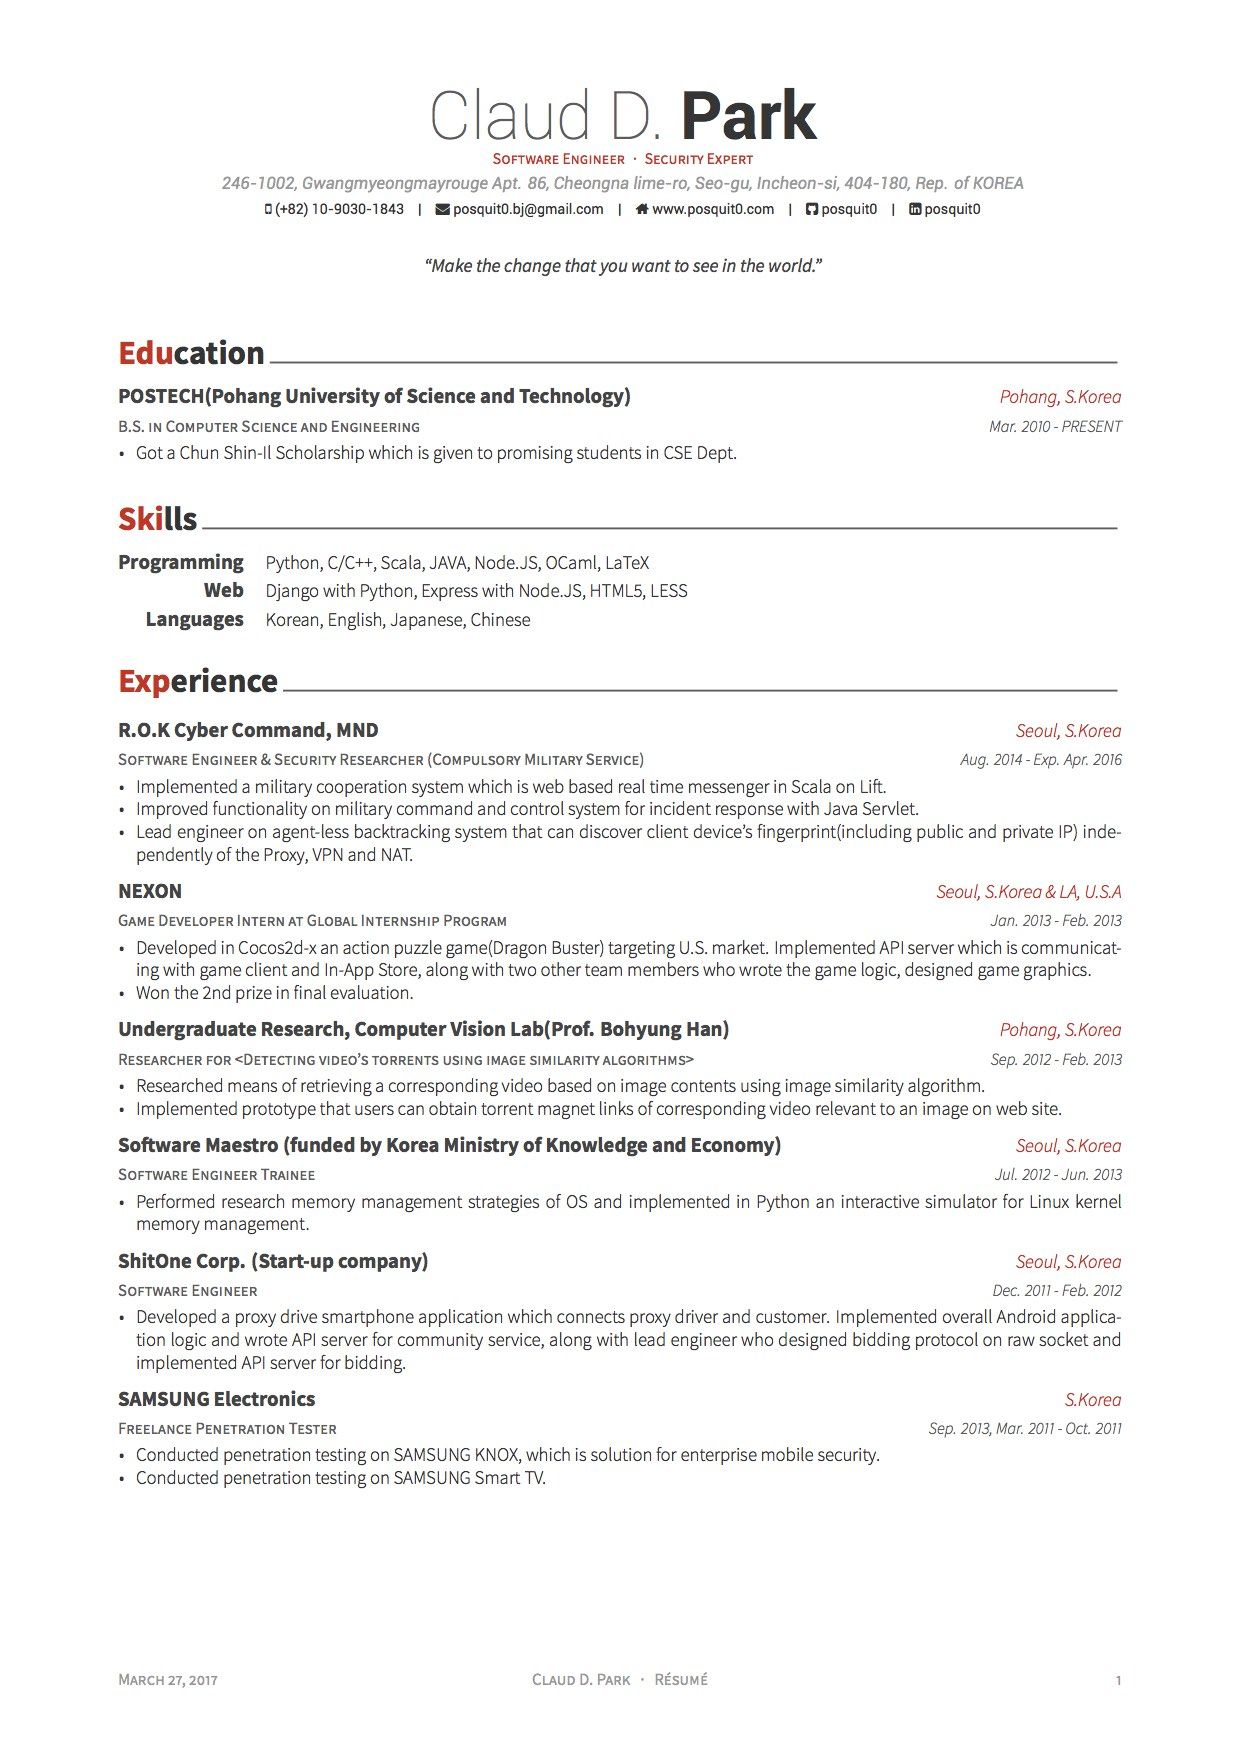 How To Make A Resume And Cover Letter Pinhahmeenah On Work  Pinterest  Template Business Plan .